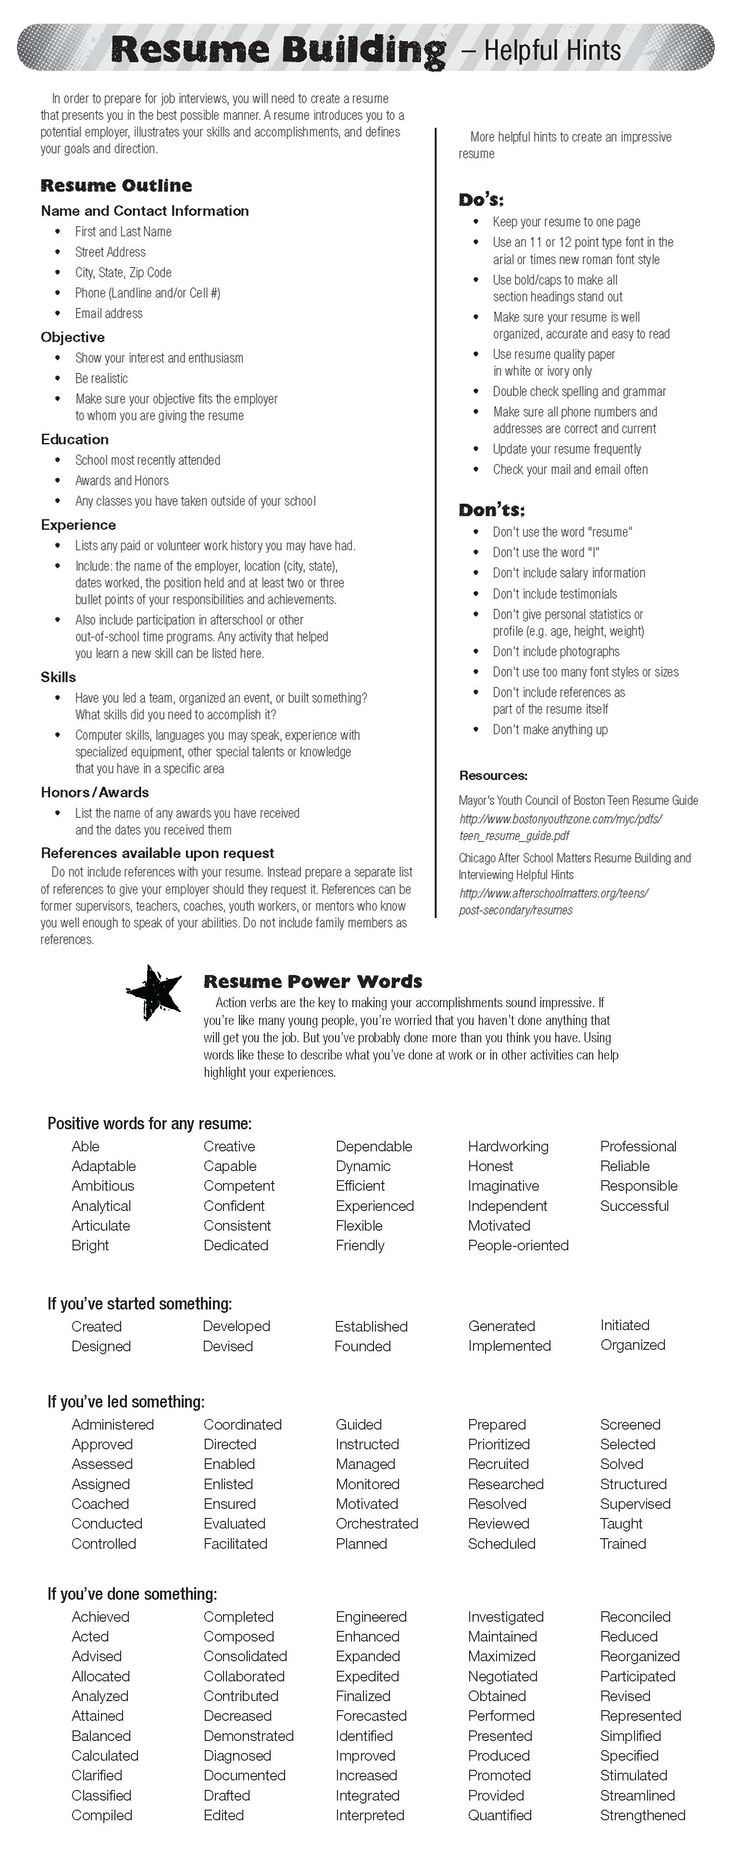 Opposenewapstandardsus  Winsome  Ideas About Resume On Pinterest  Cv Format Resume Cv And  With Handsome  Ideas About Resume On Pinterest  Cv Format Resume Cv And Resume Templates With Alluring Litigation Attorney Resume Also A Job Resume In Addition Targeted Resume Sample And House Cleaner Resume As Well As Wharton Resume Template Additionally Build Your Own Resume Free From Pinterestcom With Opposenewapstandardsus  Handsome  Ideas About Resume On Pinterest  Cv Format Resume Cv And  With Alluring  Ideas About Resume On Pinterest  Cv Format Resume Cv And Resume Templates And Winsome Litigation Attorney Resume Also A Job Resume In Addition Targeted Resume Sample From Pinterestcom